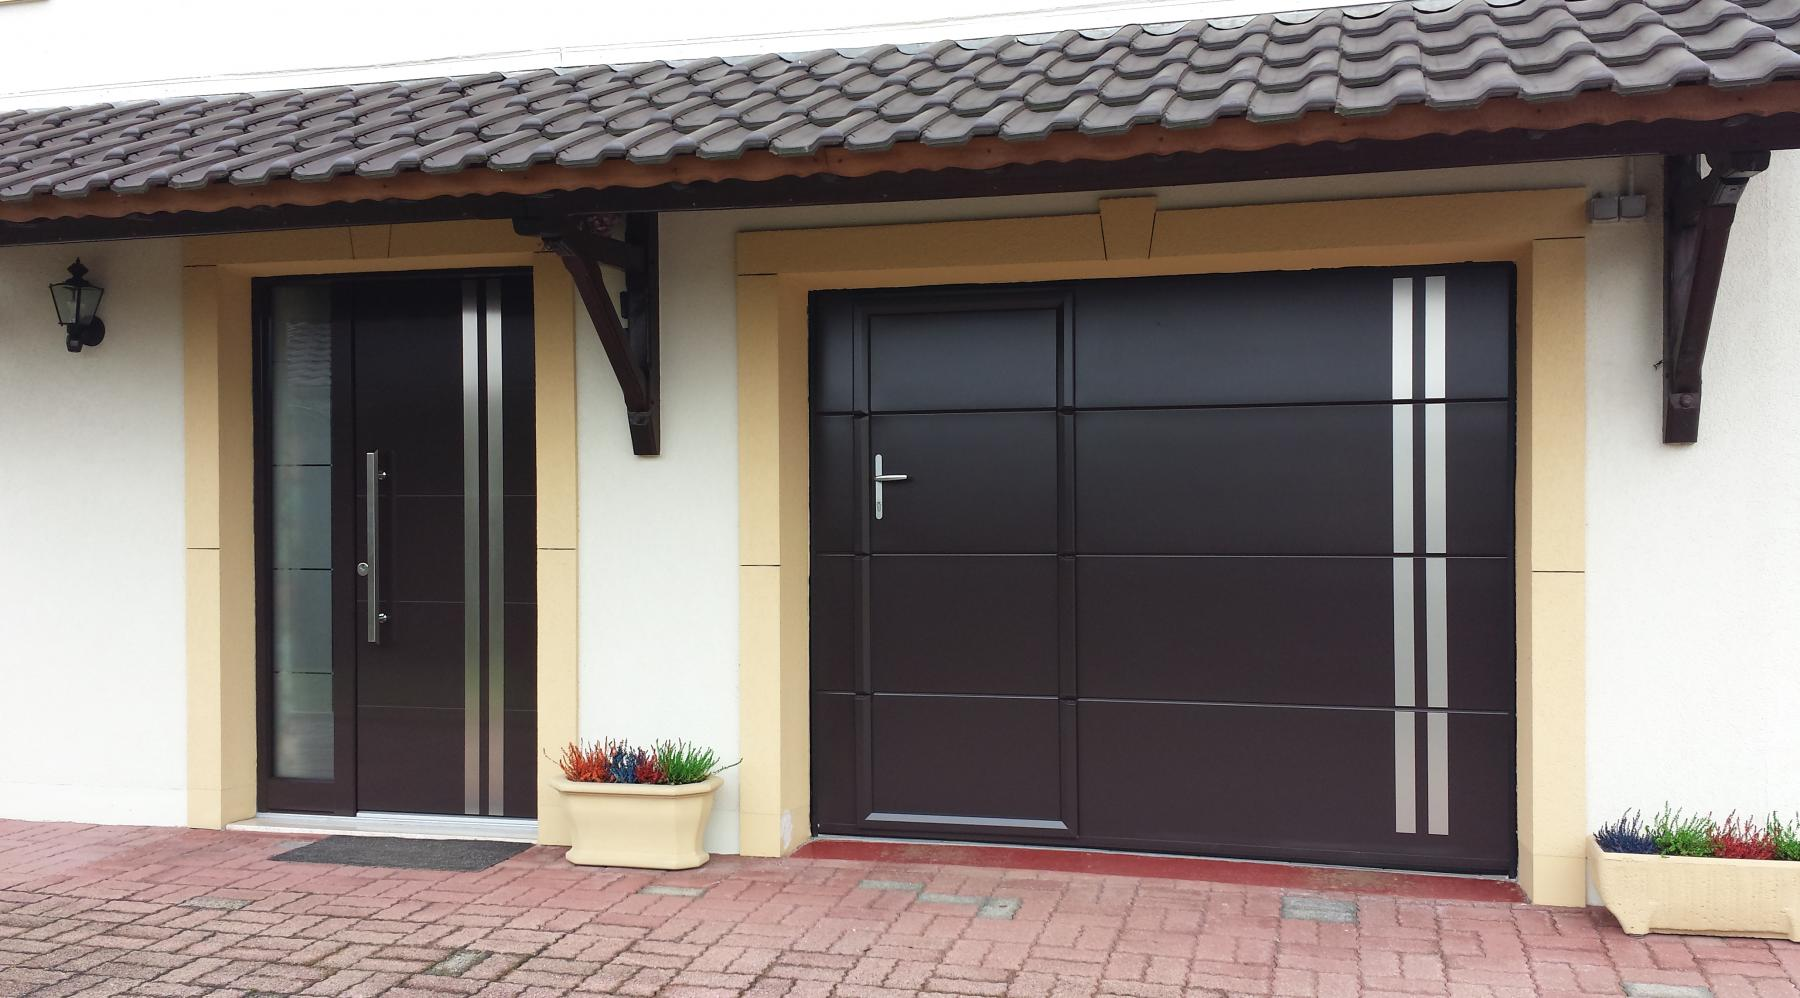 Galerie portes de garage weigerding for Porte de garage weigerding